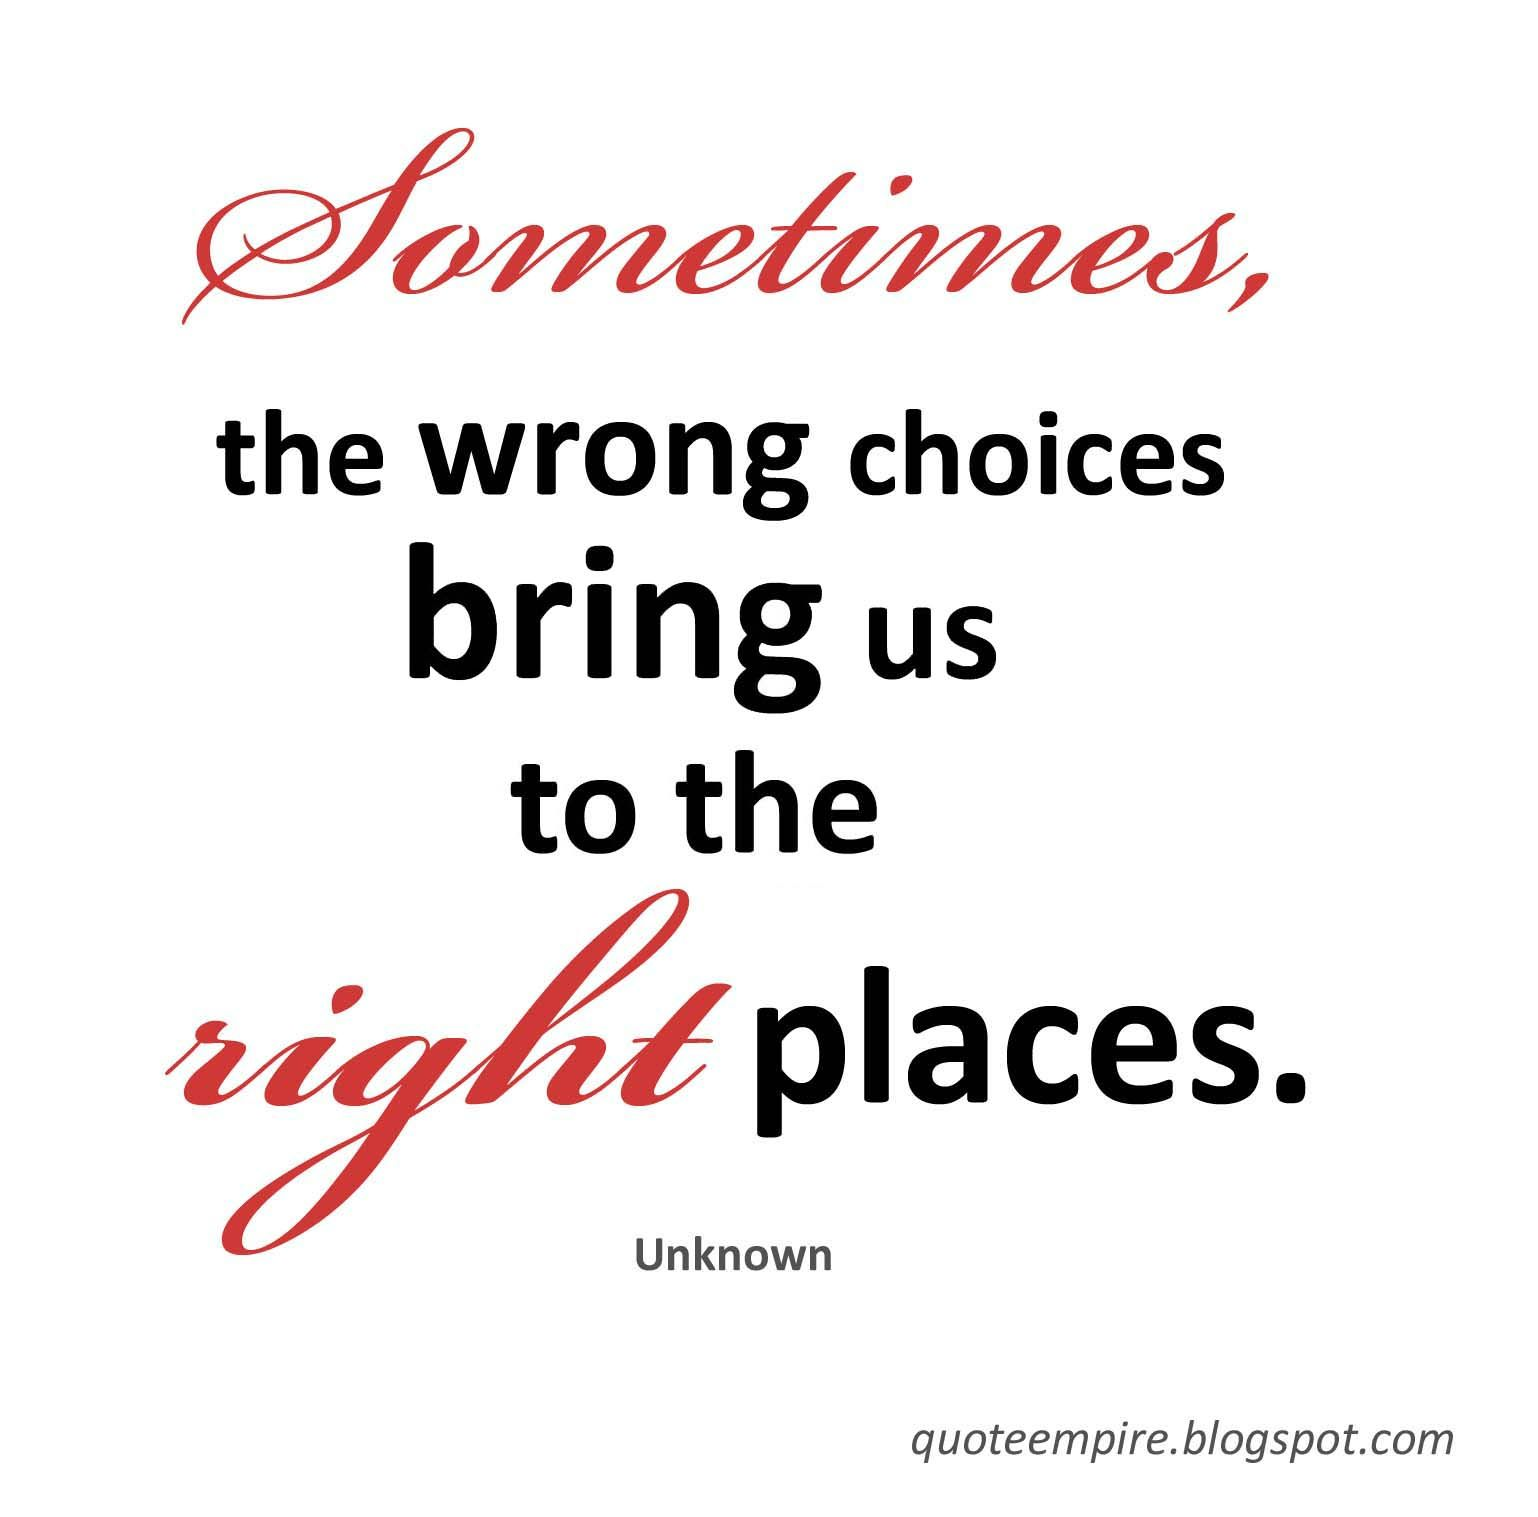 Sometimes, the wrong choices bring us to the right places.